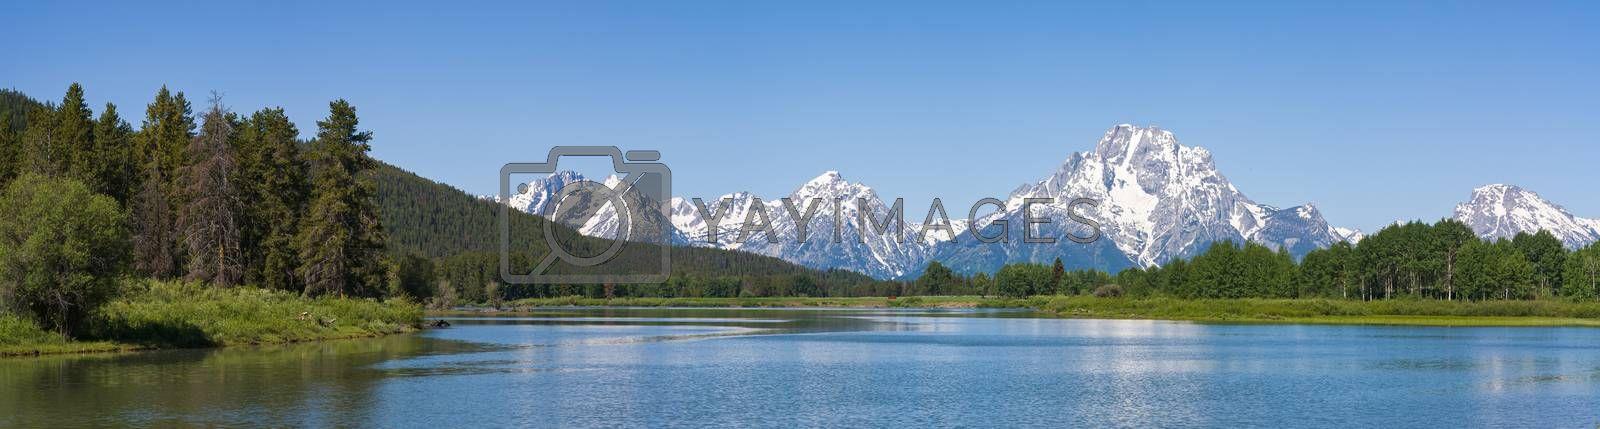 Panoramic of the Snake River in the Teton Mountains of Wyoming. by Gary Gray